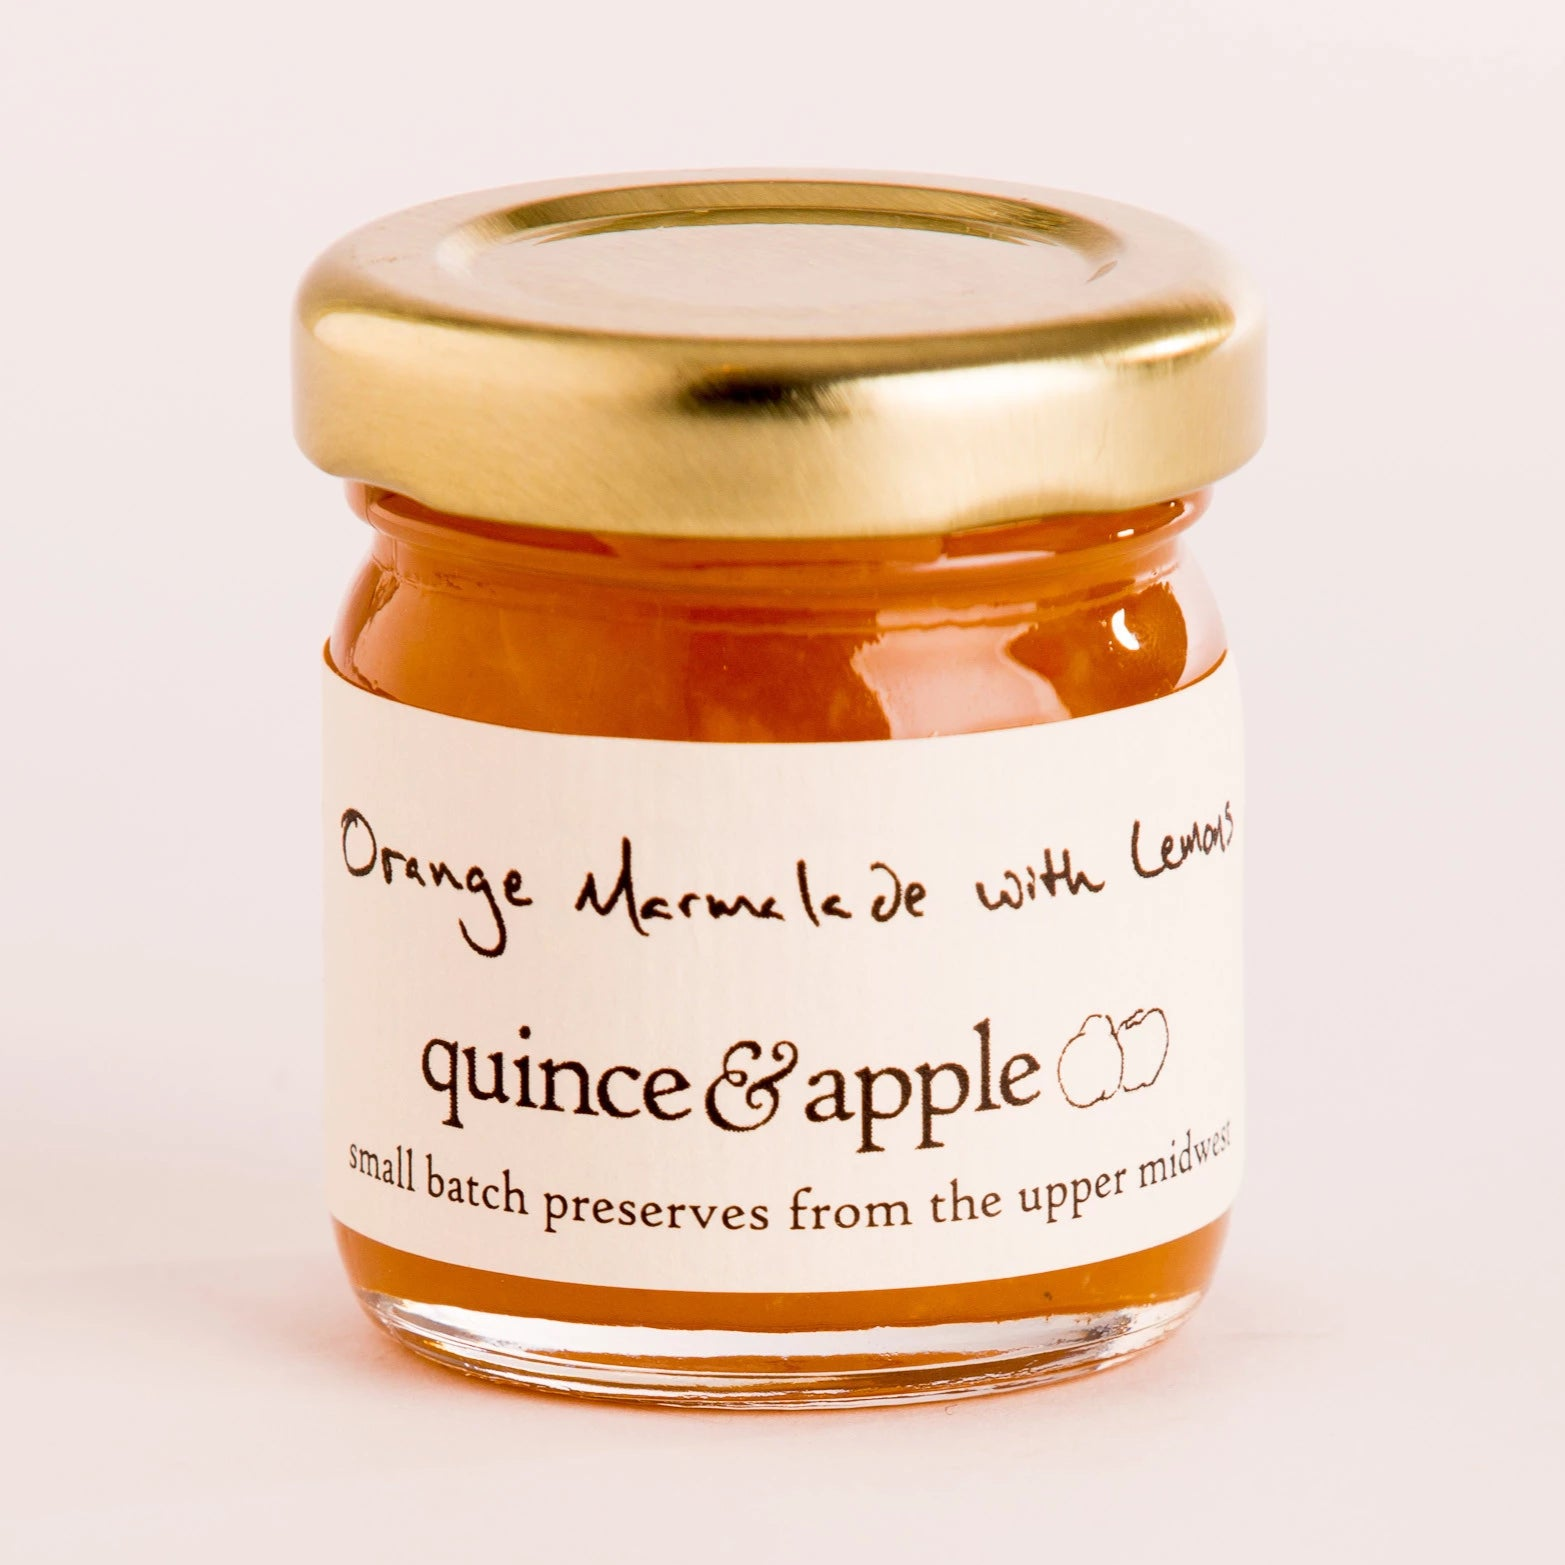 Tiny Orange Marmalade with Lemons